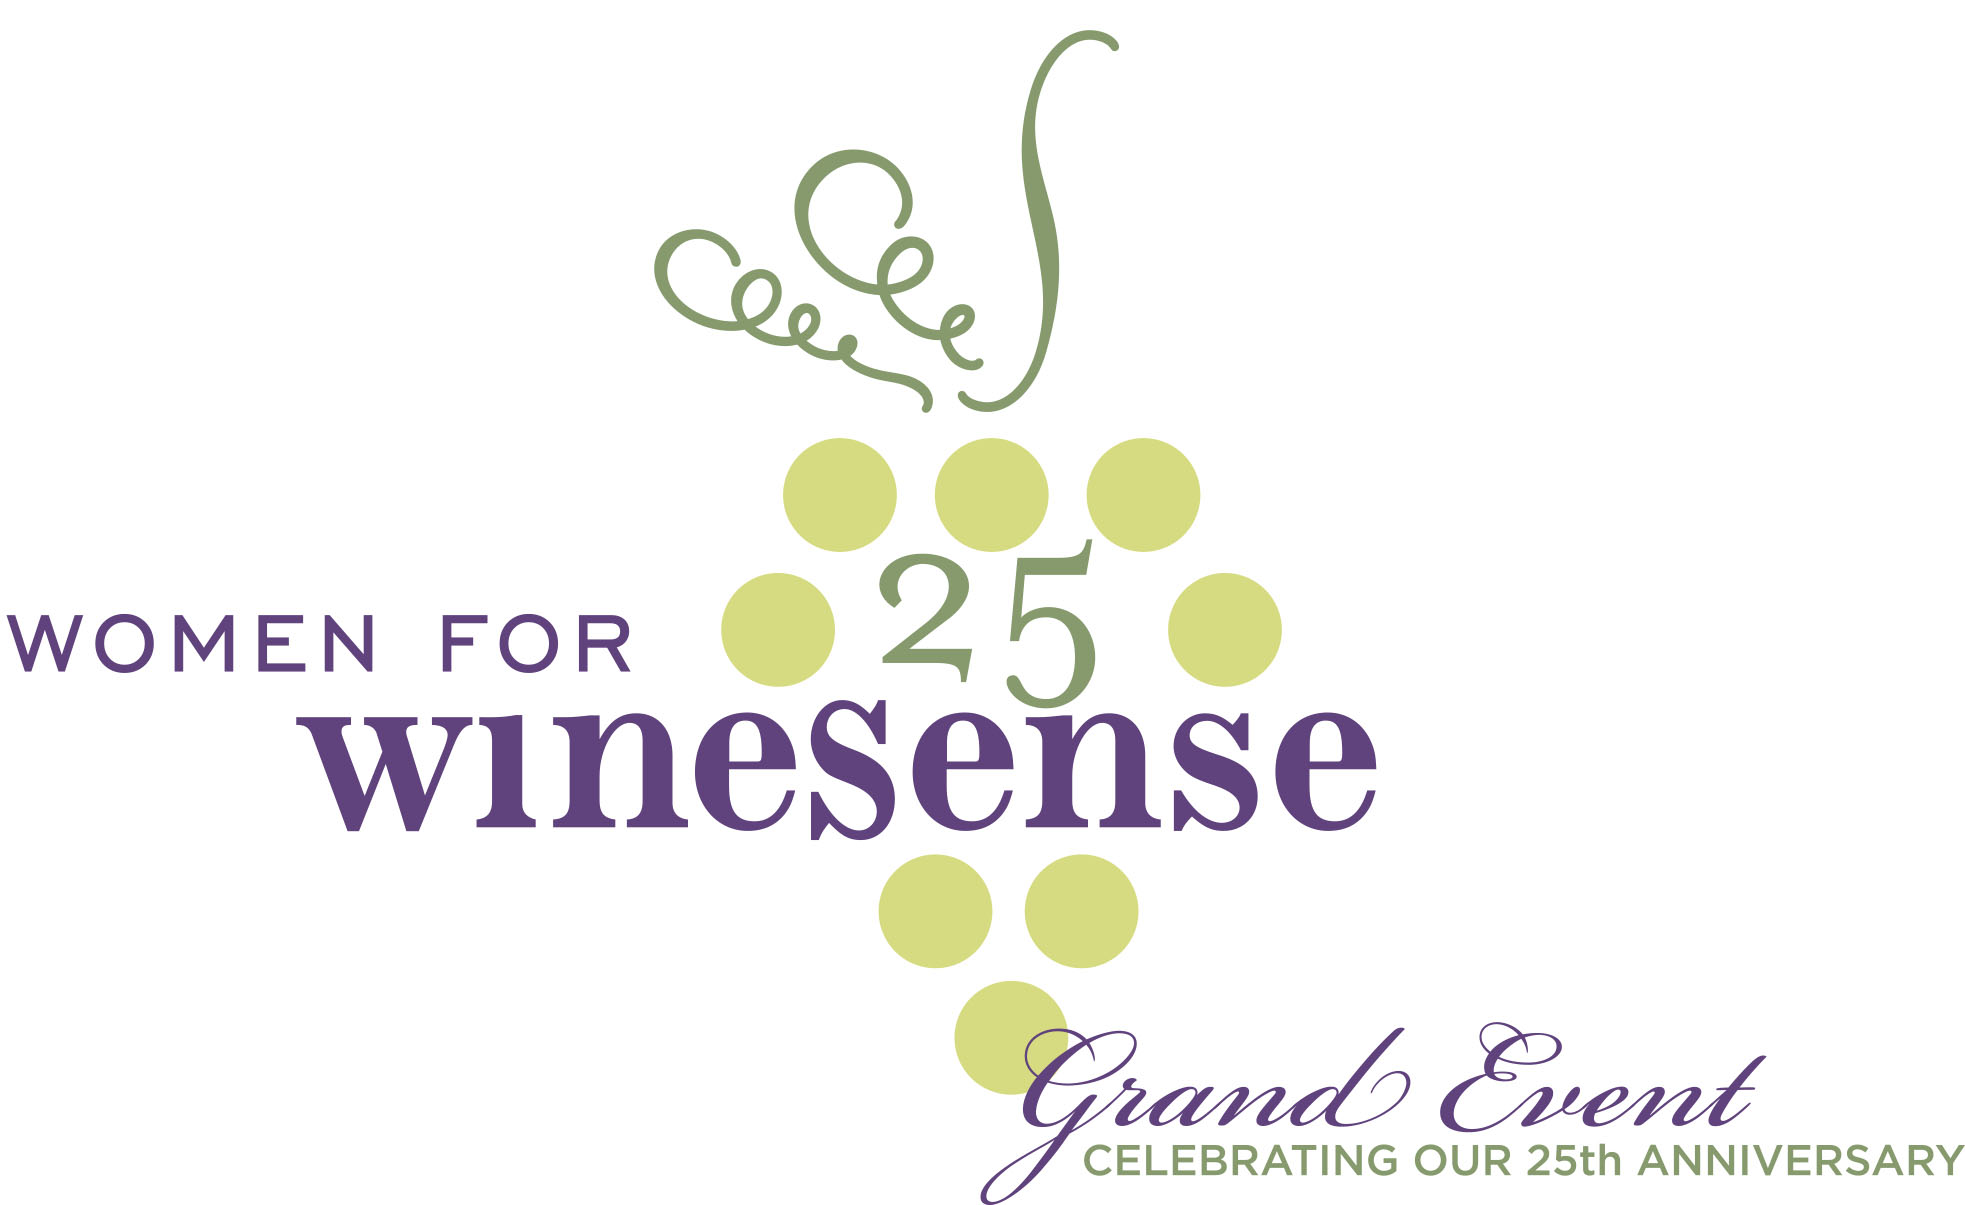 Finger Lakes wineries join national organization for weekend symposium